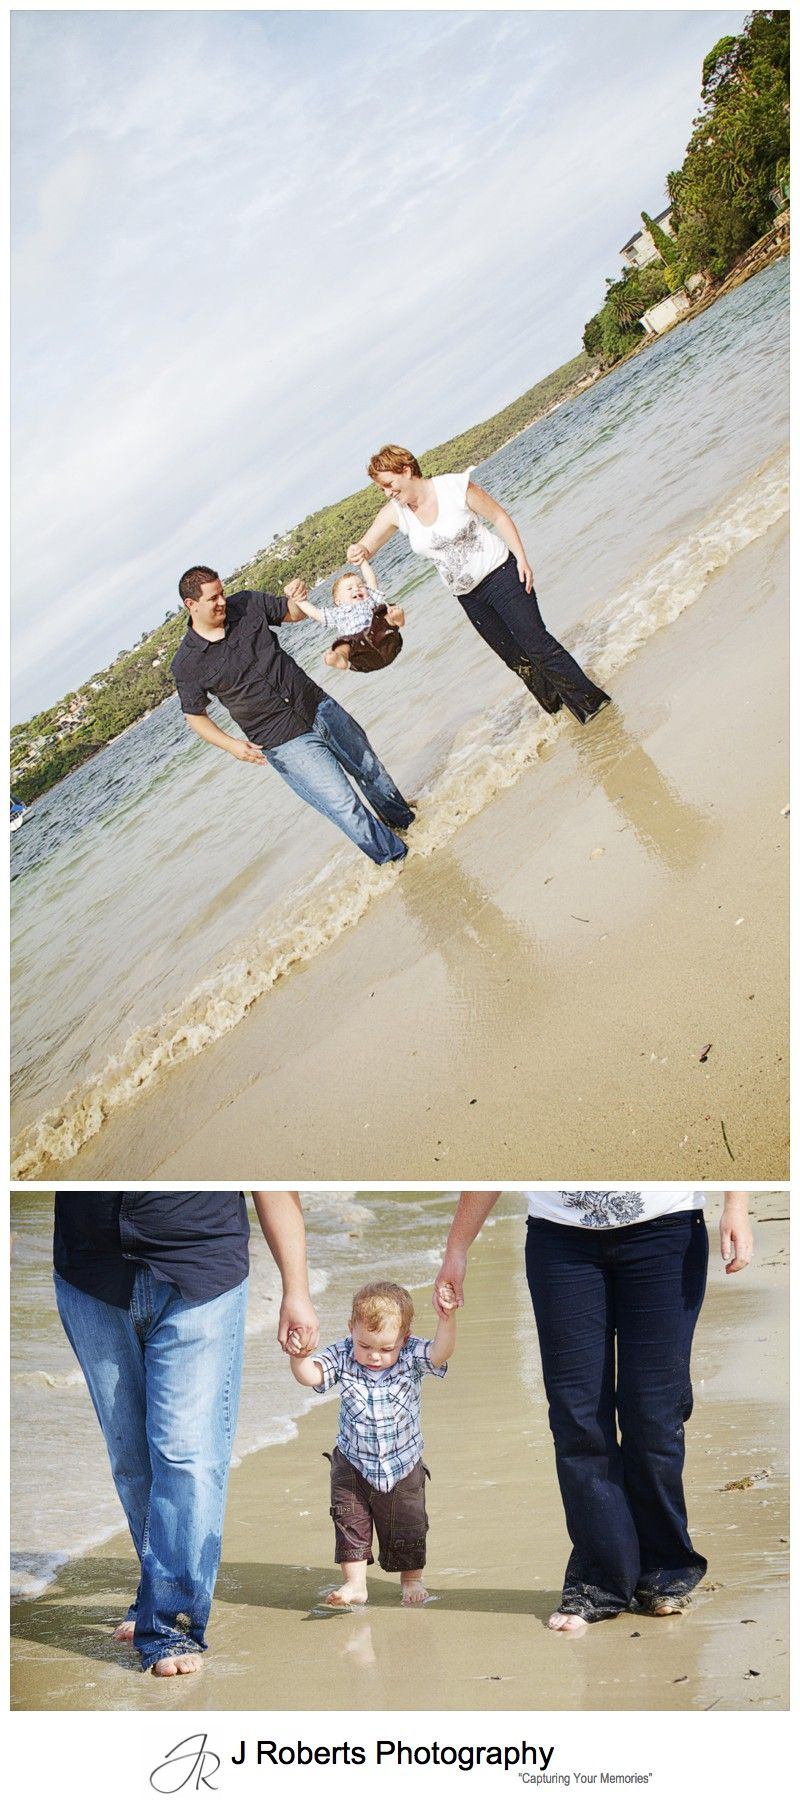 Little boy being swung by his parents at the beach - family portrait photography sydney